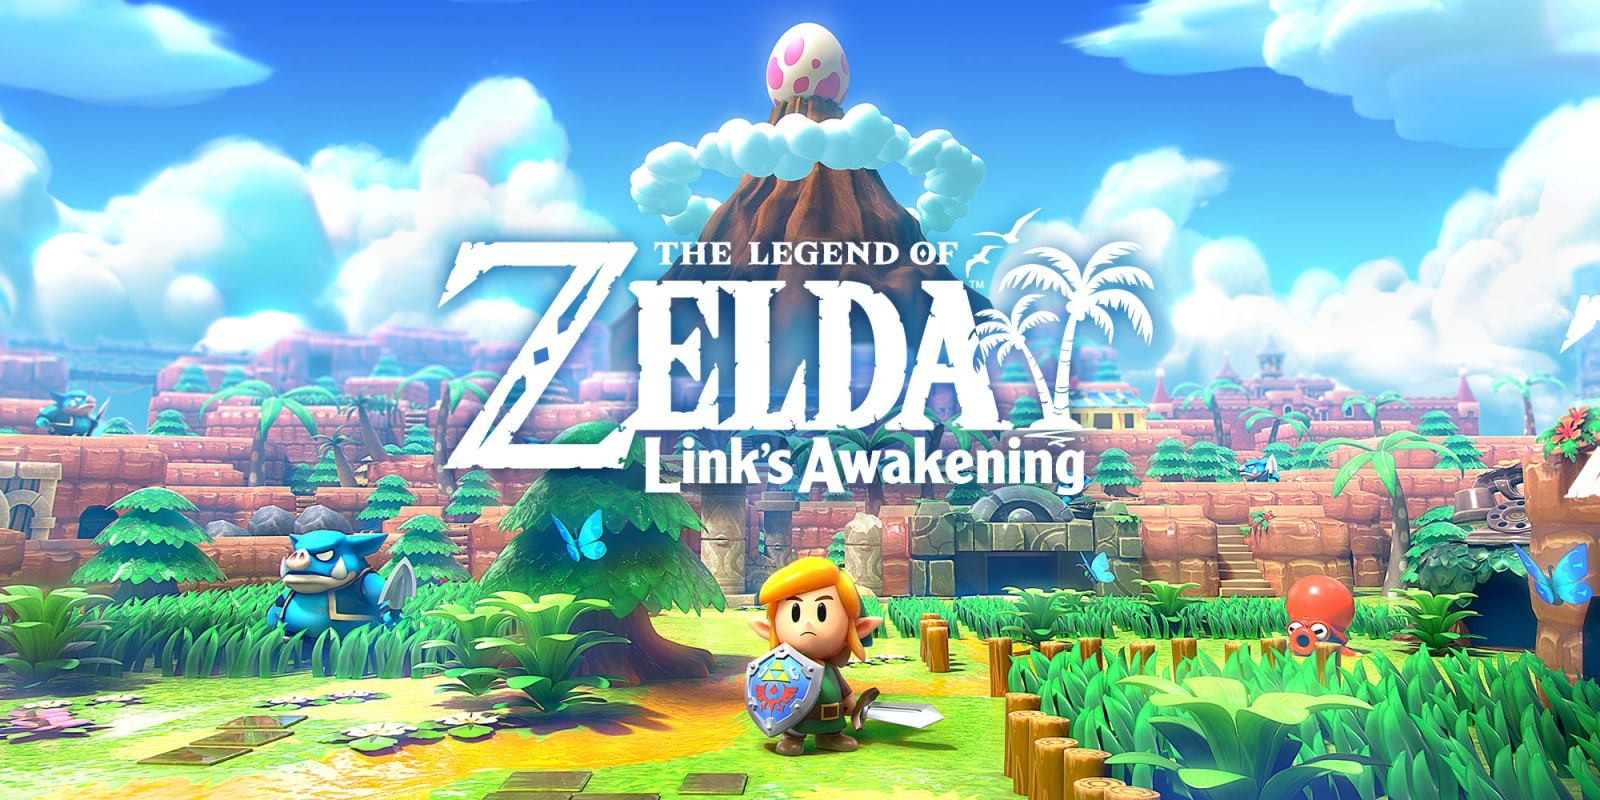 link's awakening jeu video y'a quoi qui sort